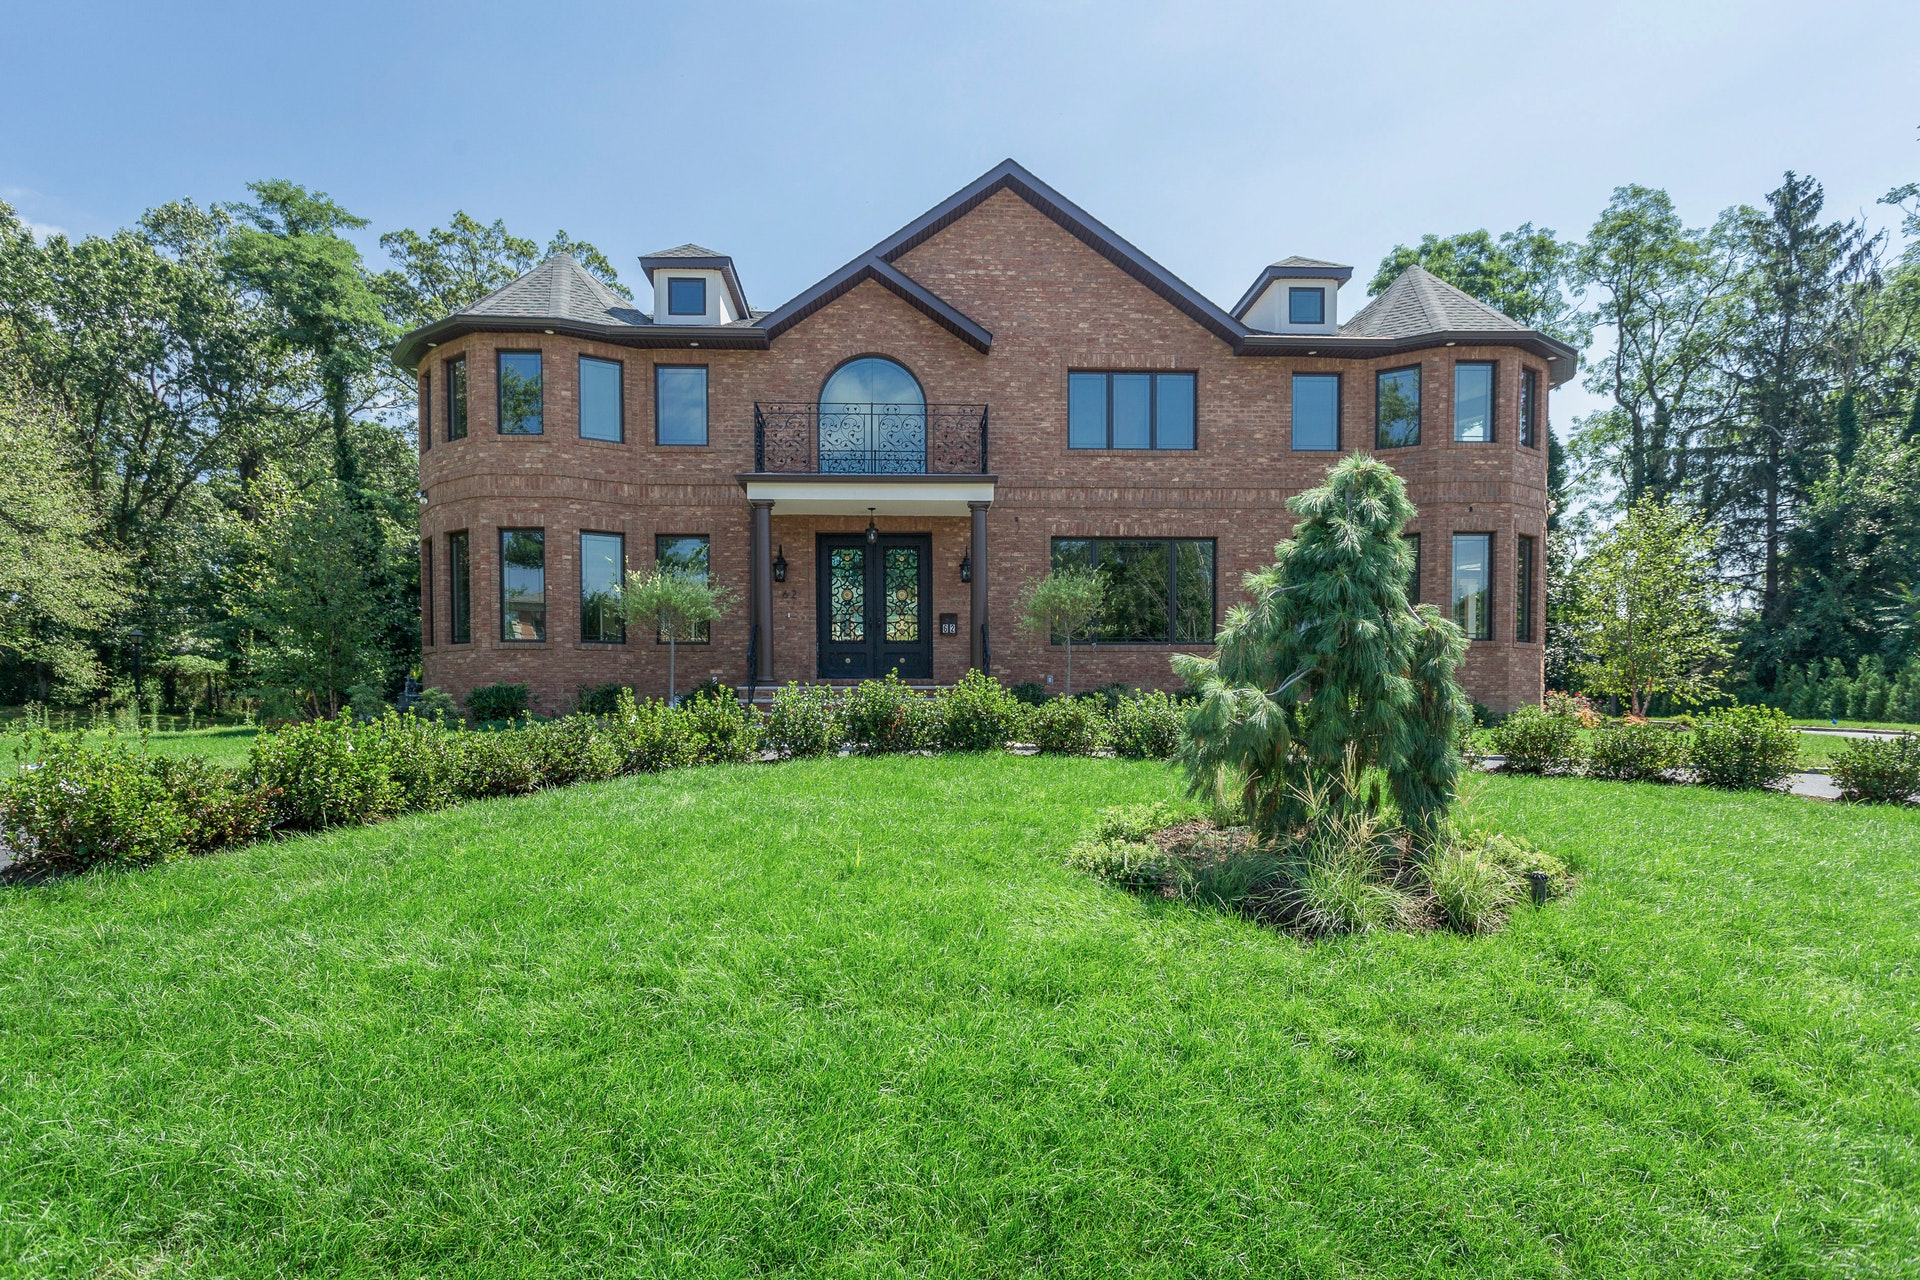 Brand New Brick Colonial Overlooking the rolling fairways of Wheatley Hills golf course